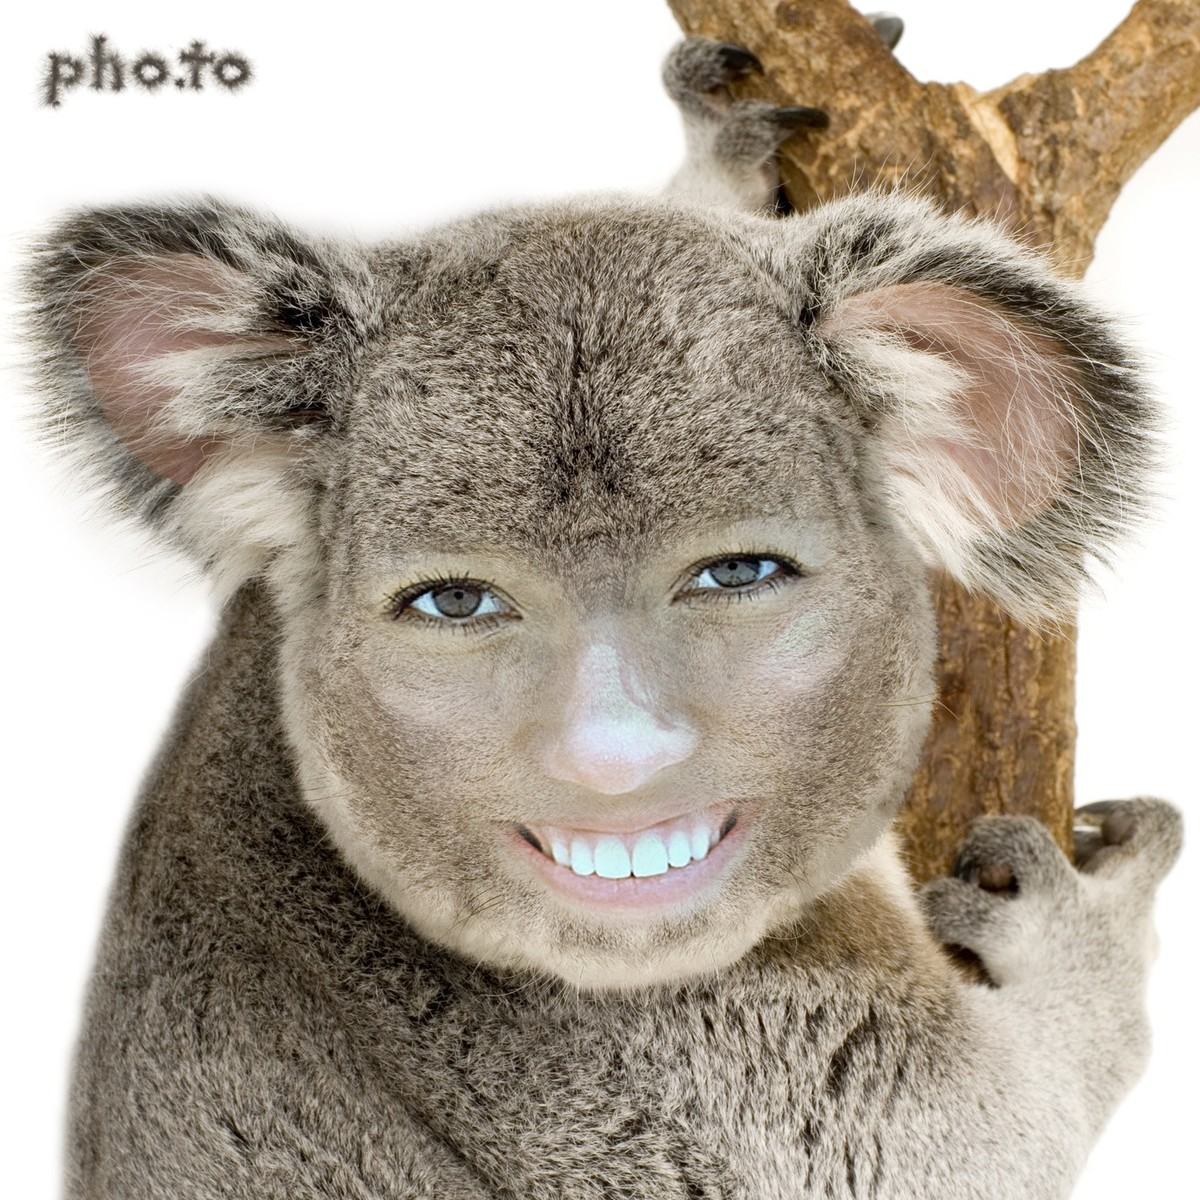 This face in hole effect adds your face to a koala body